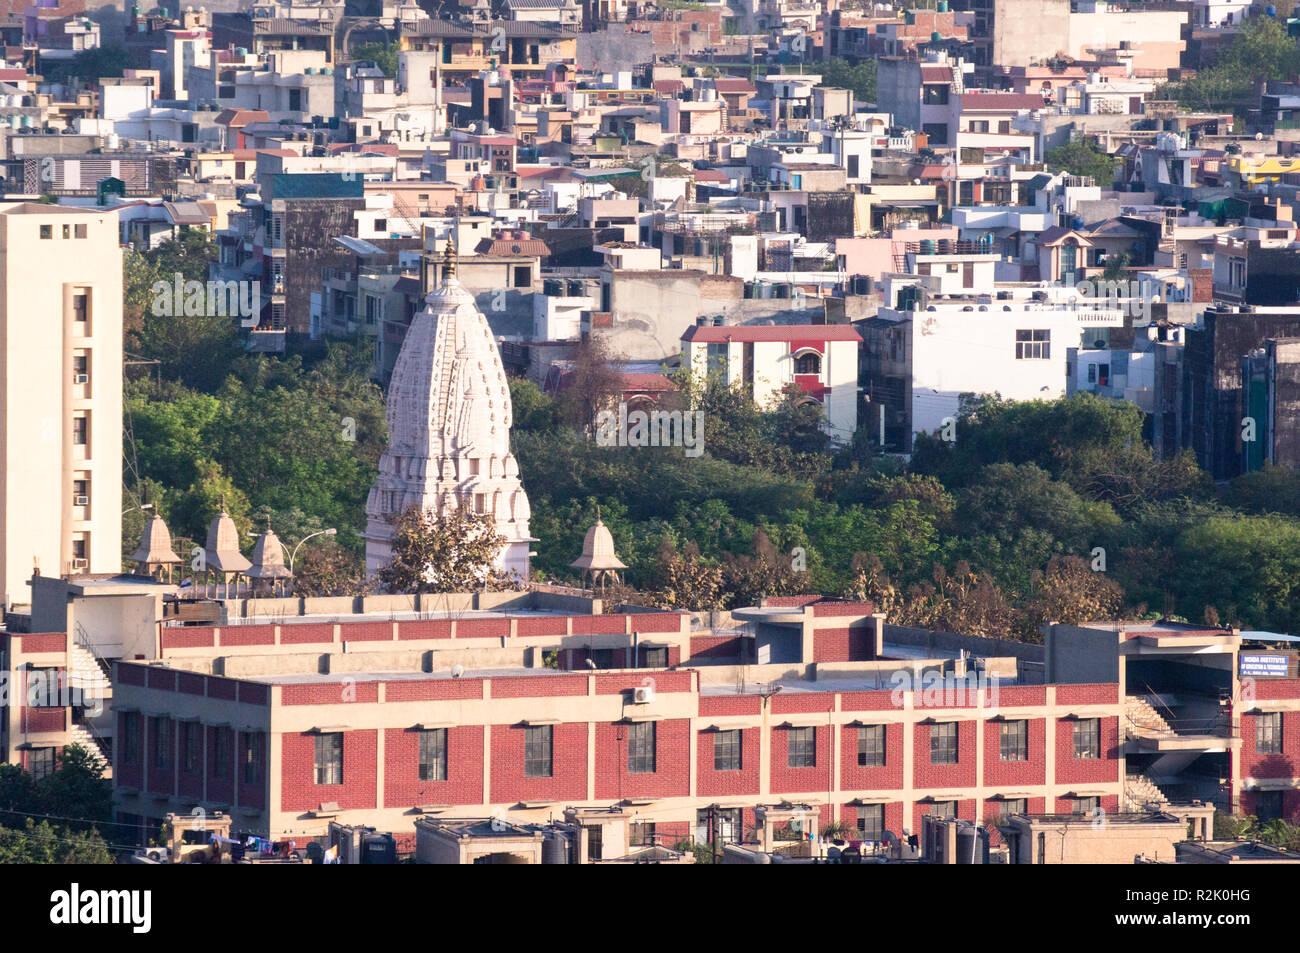 Temple in the middle of a locality aerial shot  - Stock Image